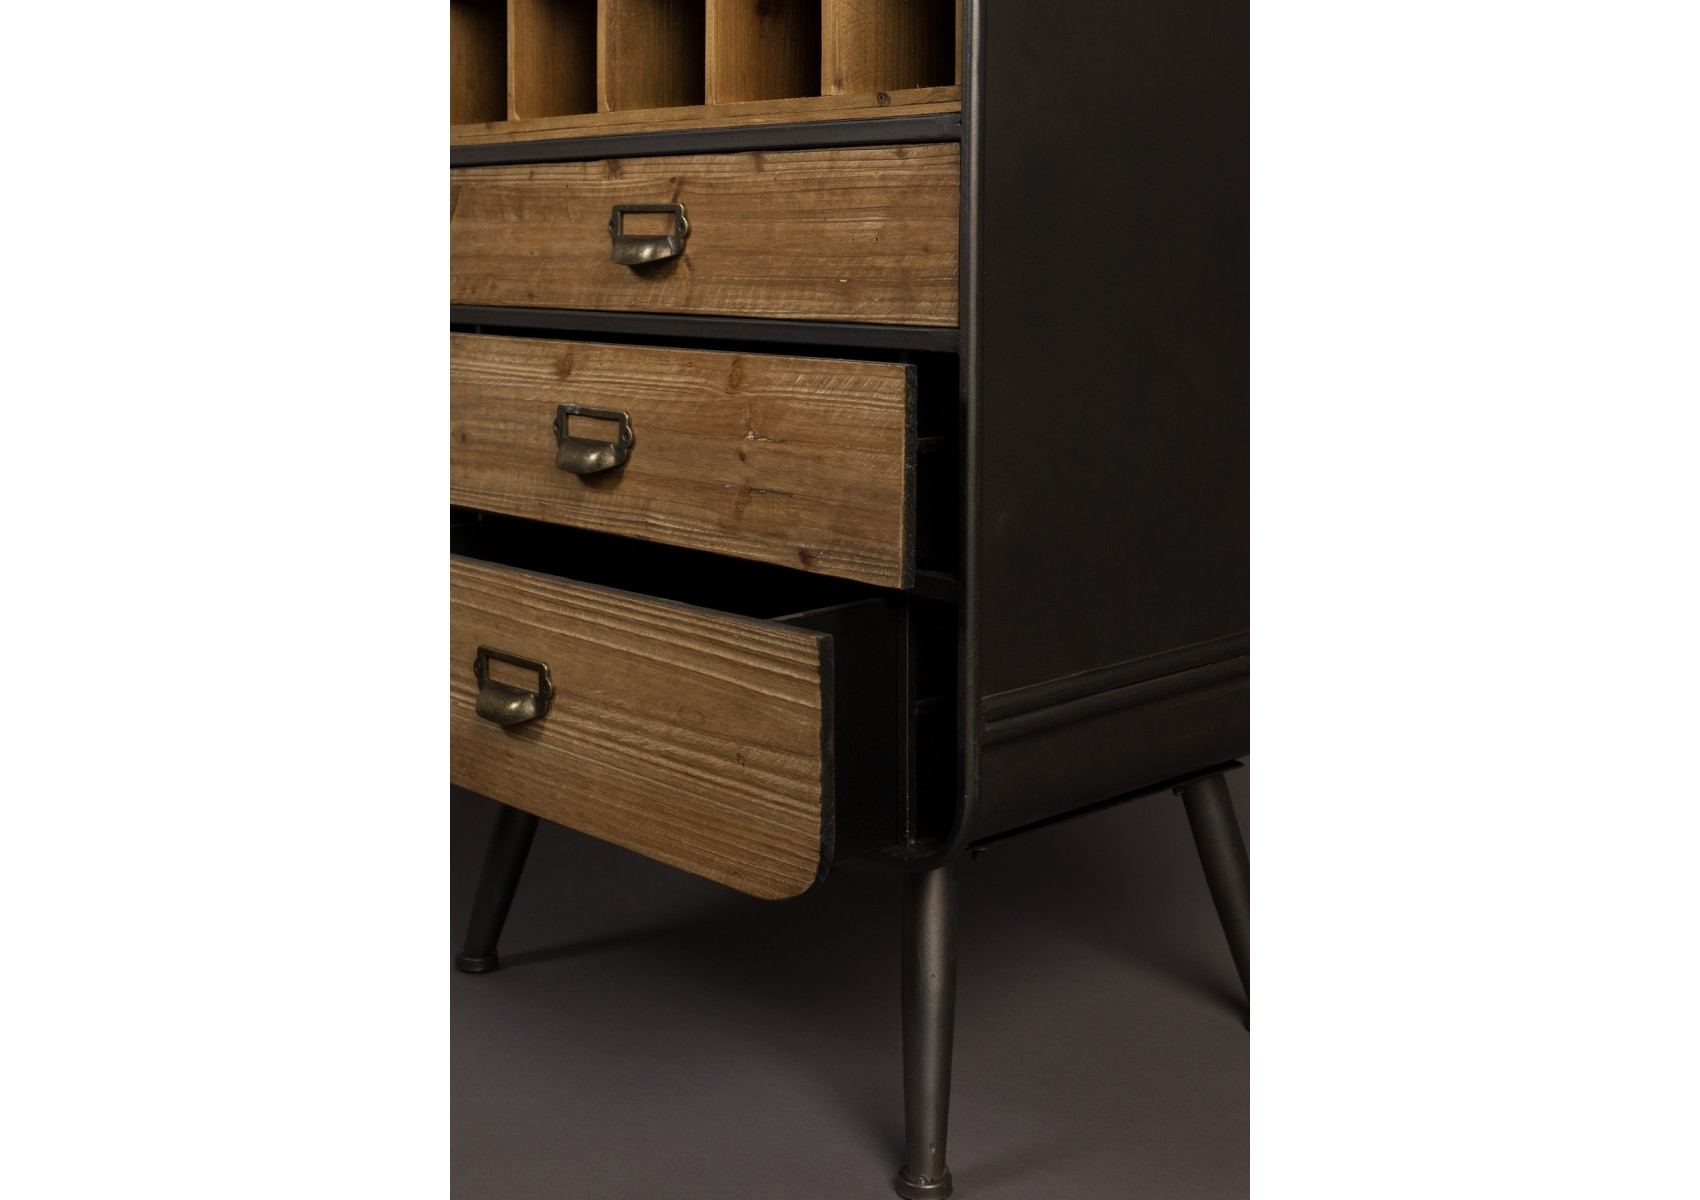 meuble bouteilles gallery of casier a bouteilles casier a bouteilles with meuble bouteilles. Black Bedroom Furniture Sets. Home Design Ideas